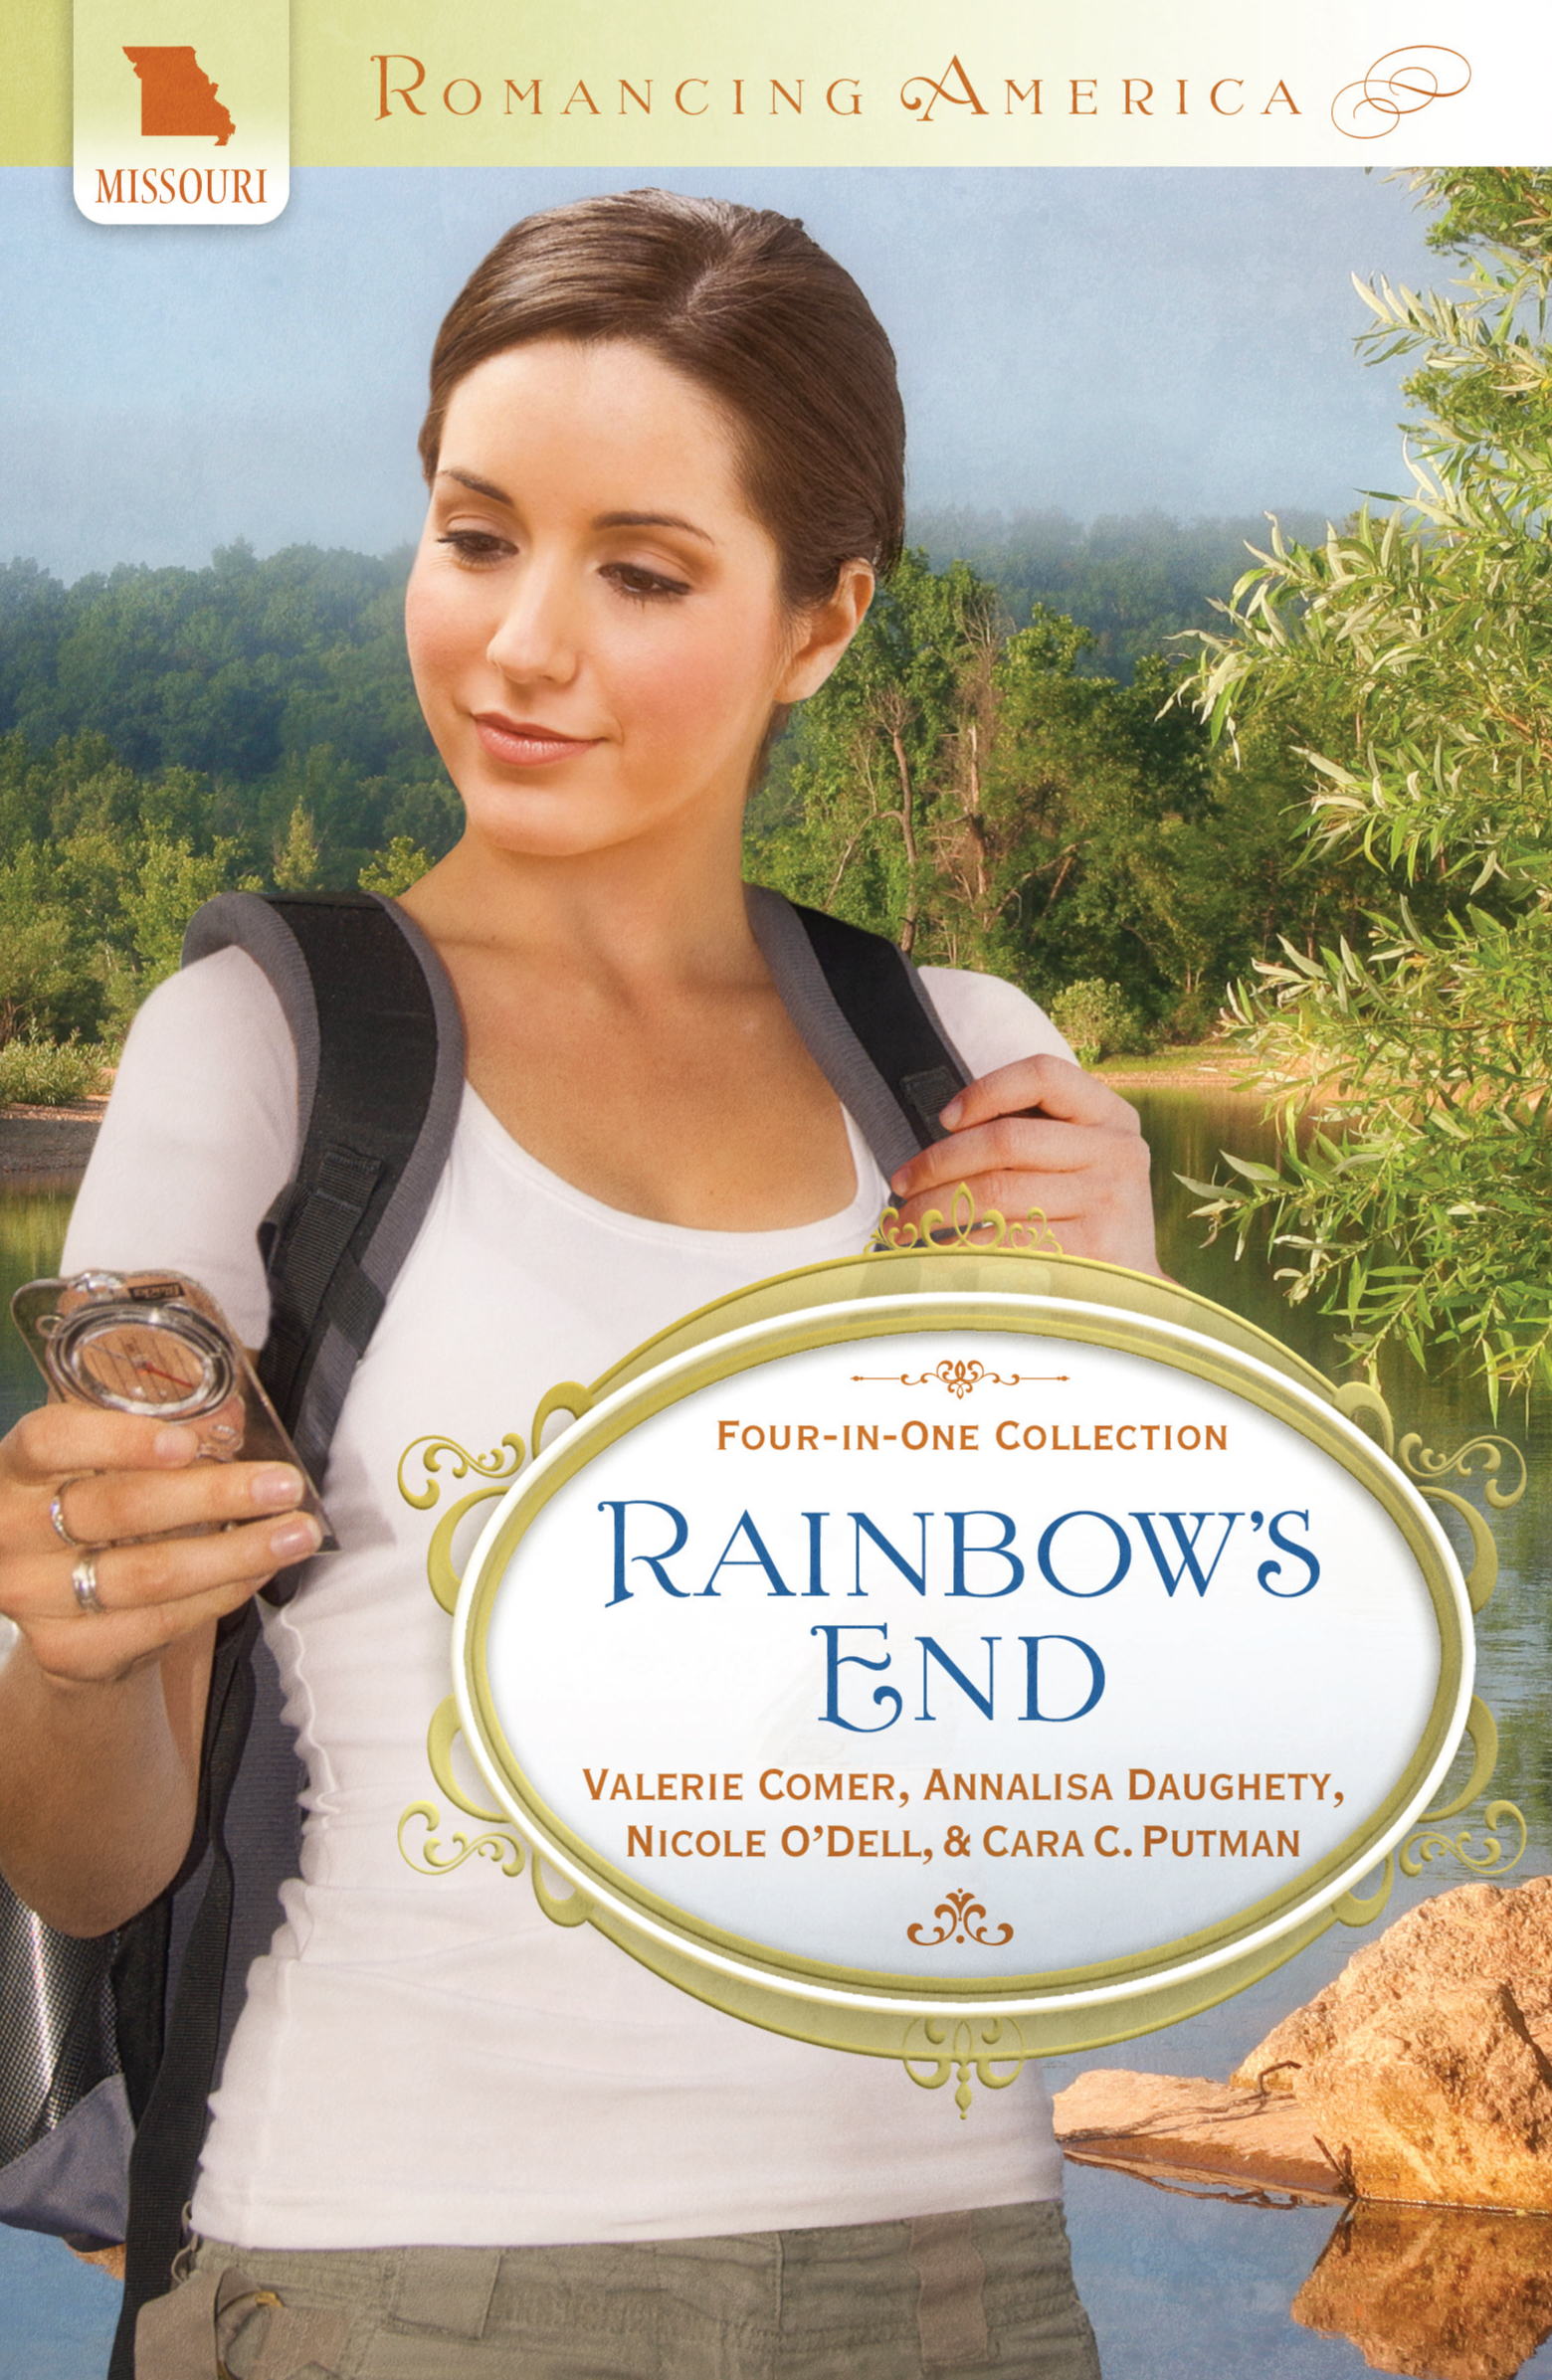 Rainbow's End — a geocaching romance collection